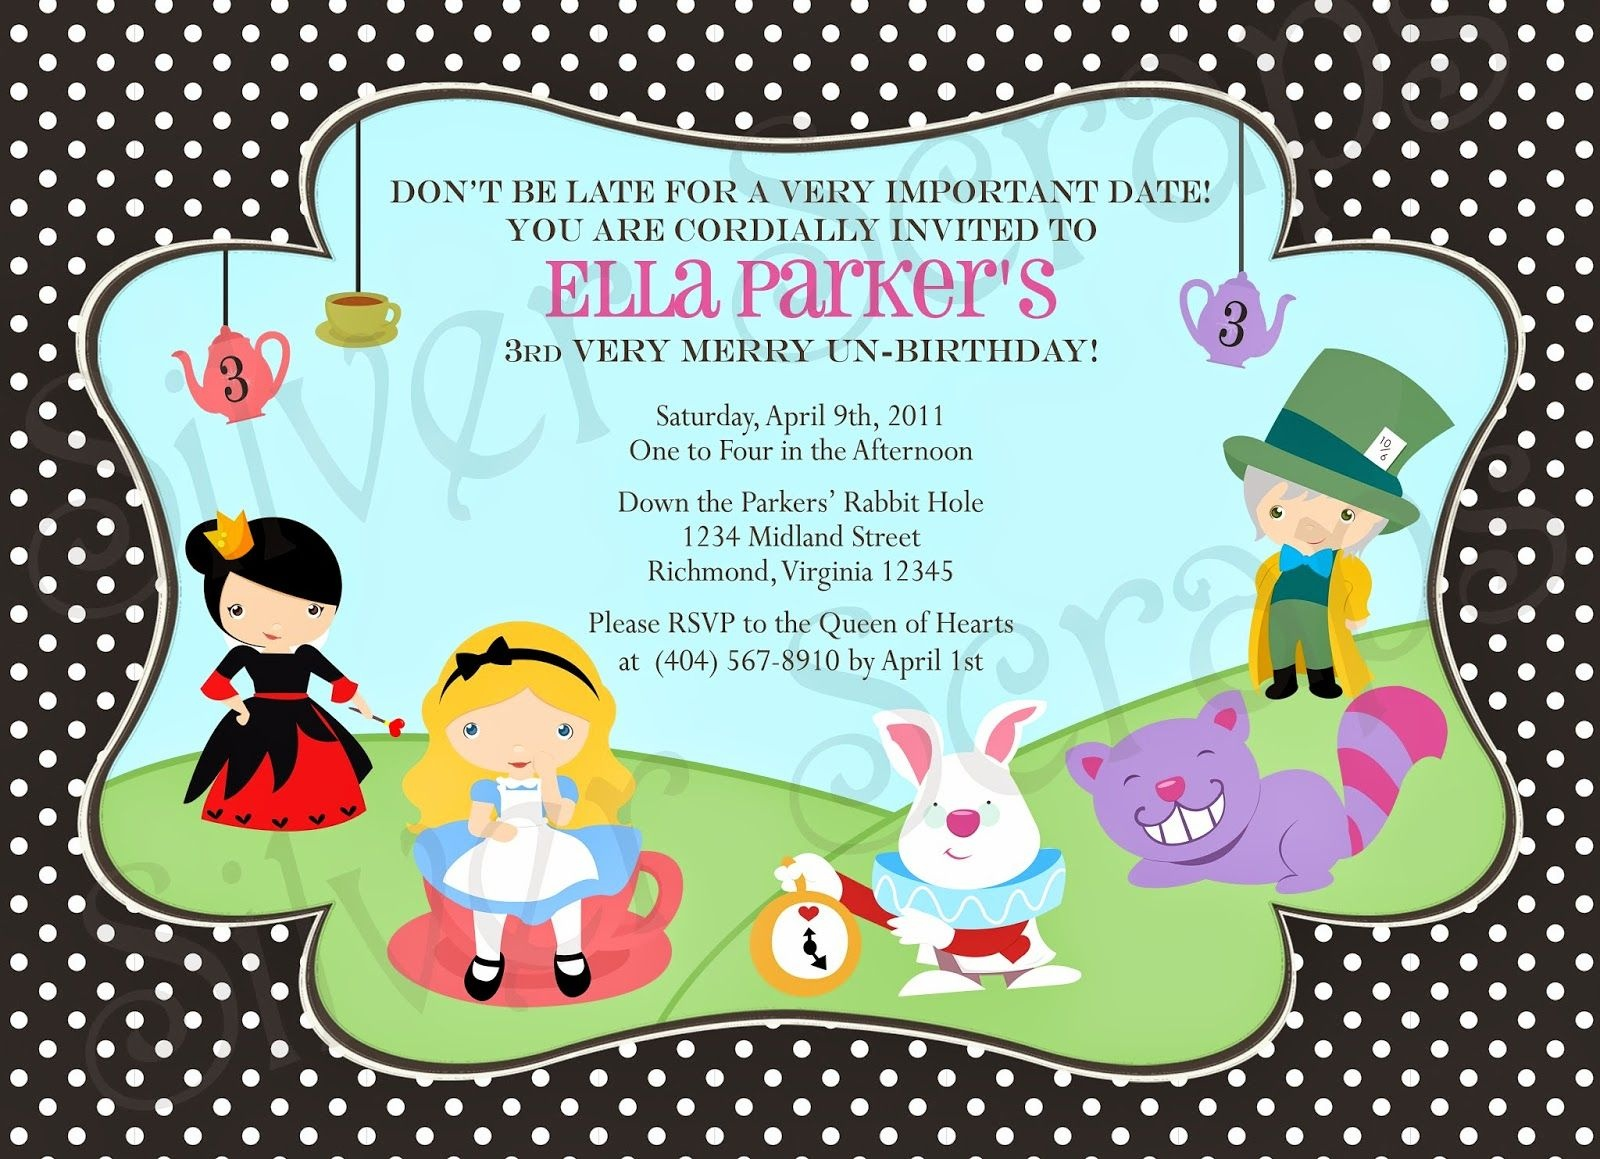 Alice In Wonderland Birthday Invitations Free Printable | Alice - Mad Hatter Tea Party Invitations Free Printable